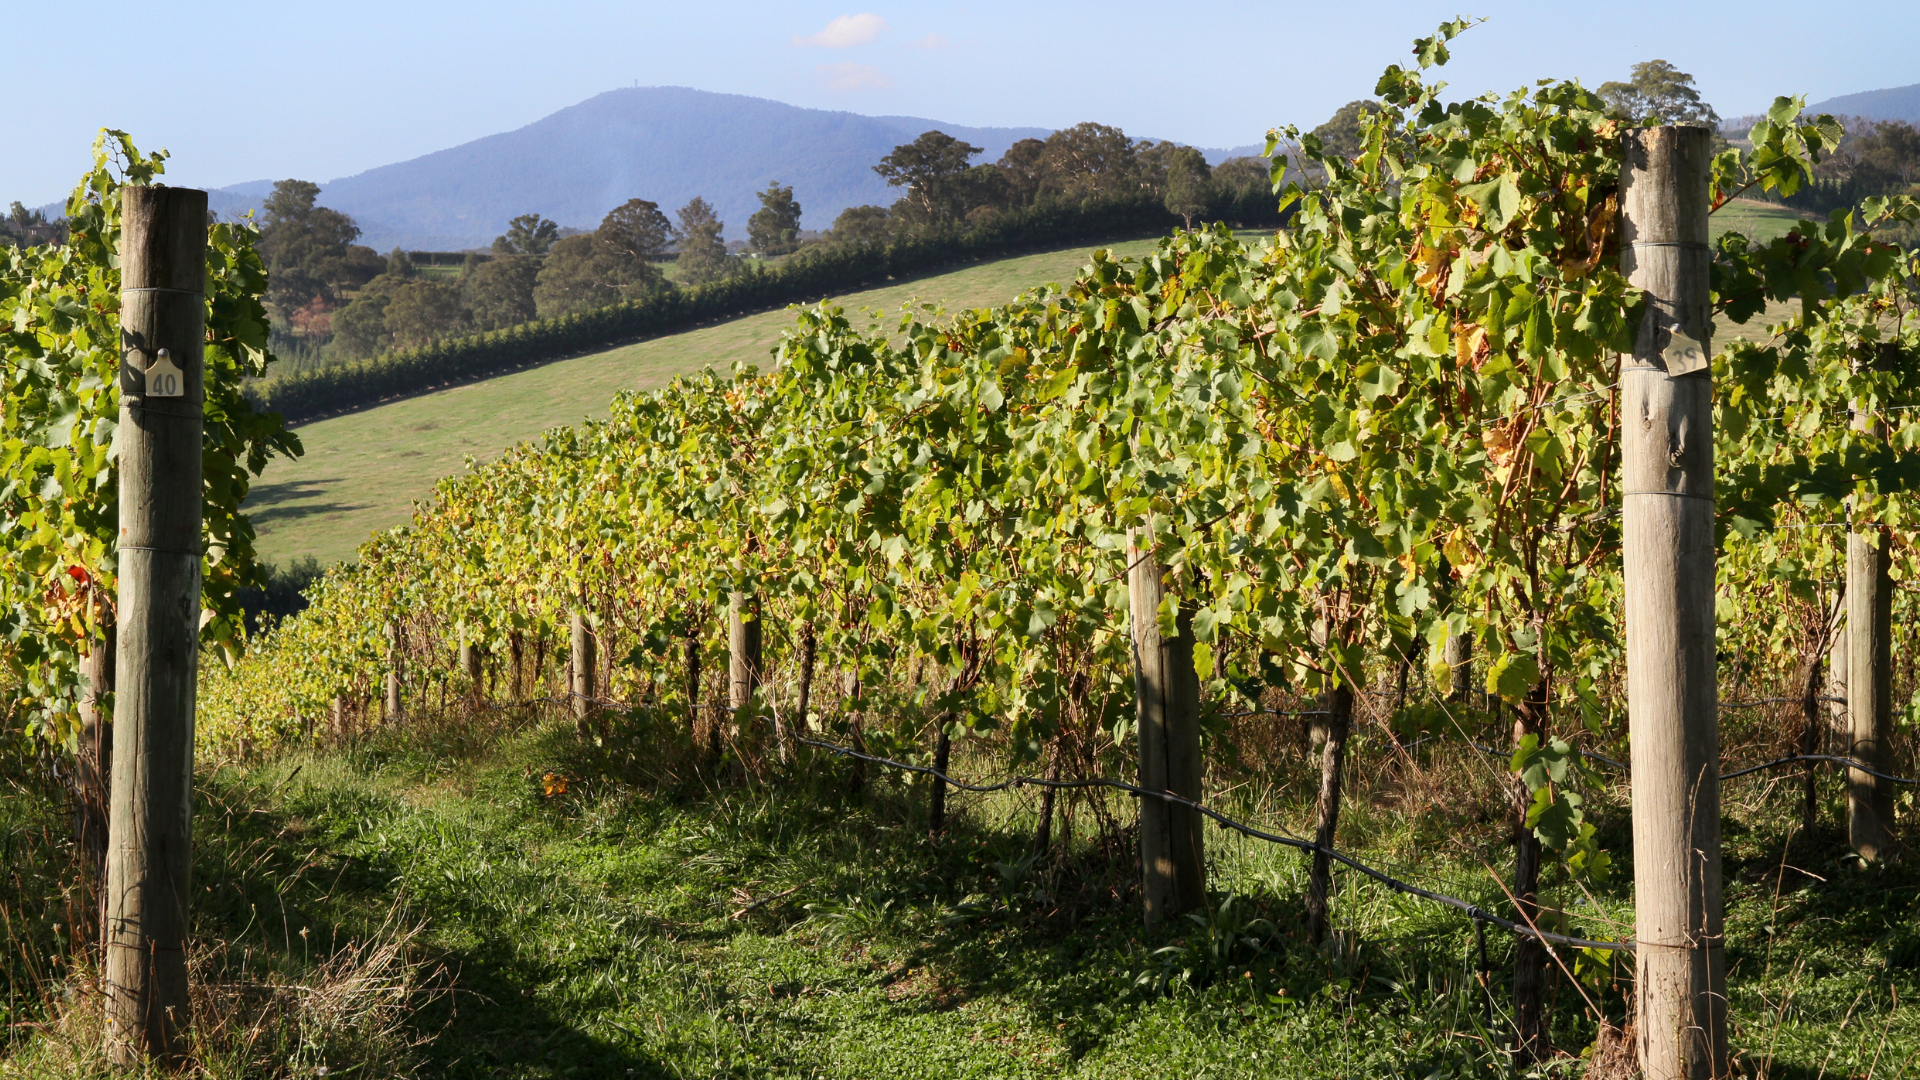 Sustainable glyphosate use in Australian orchards and vineyards